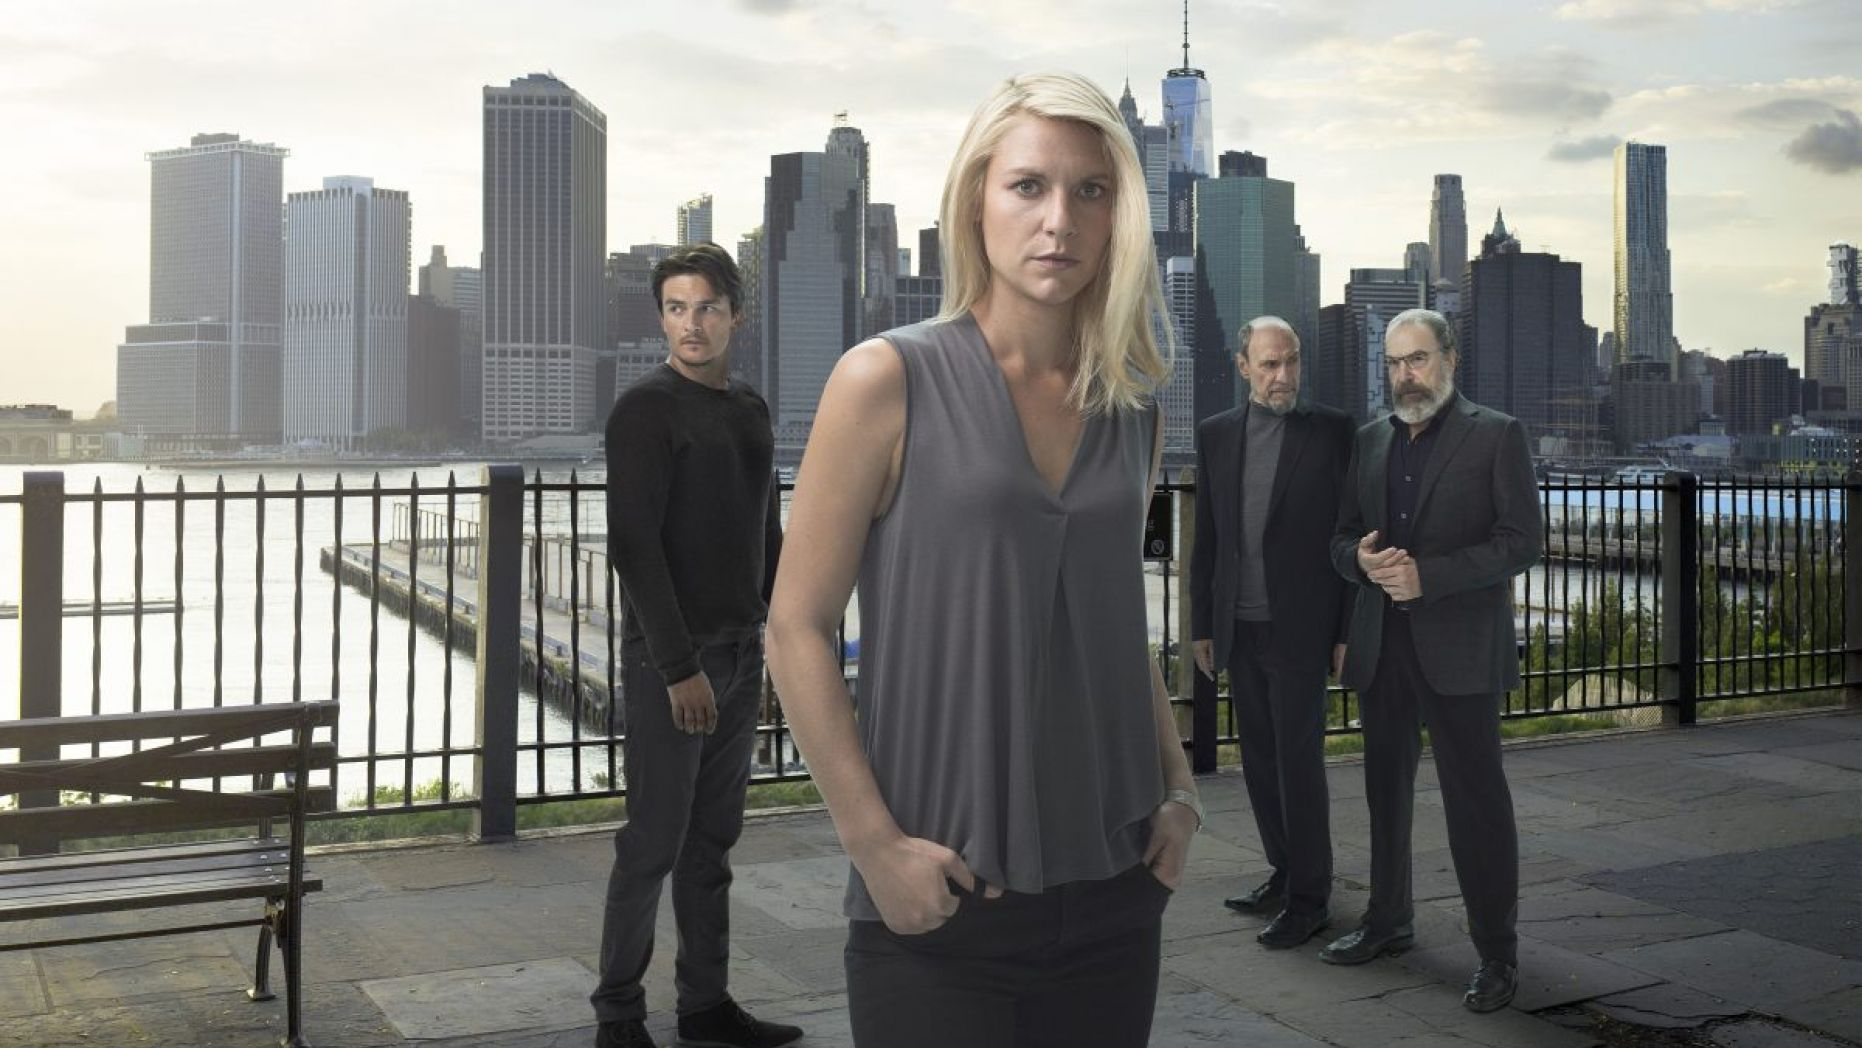 Marvelous Showtimes Homeland Season 8 Begins Filming On February 5 Home Interior And Landscaping Pimpapssignezvosmurscom